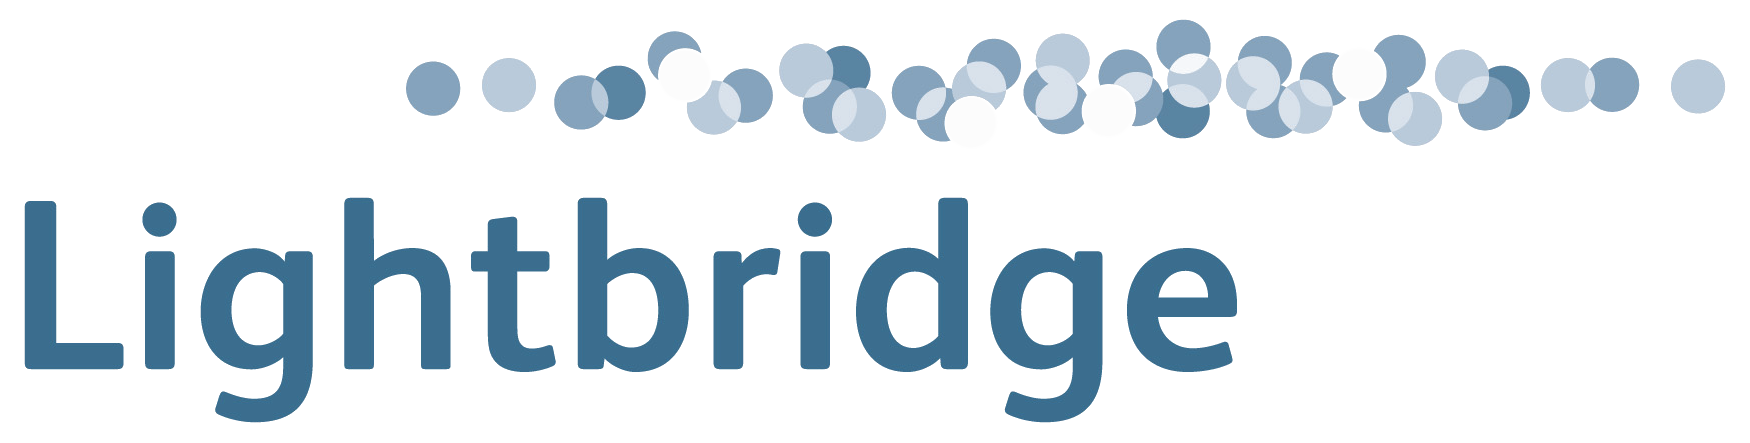 Lightbridge Corp. Logo